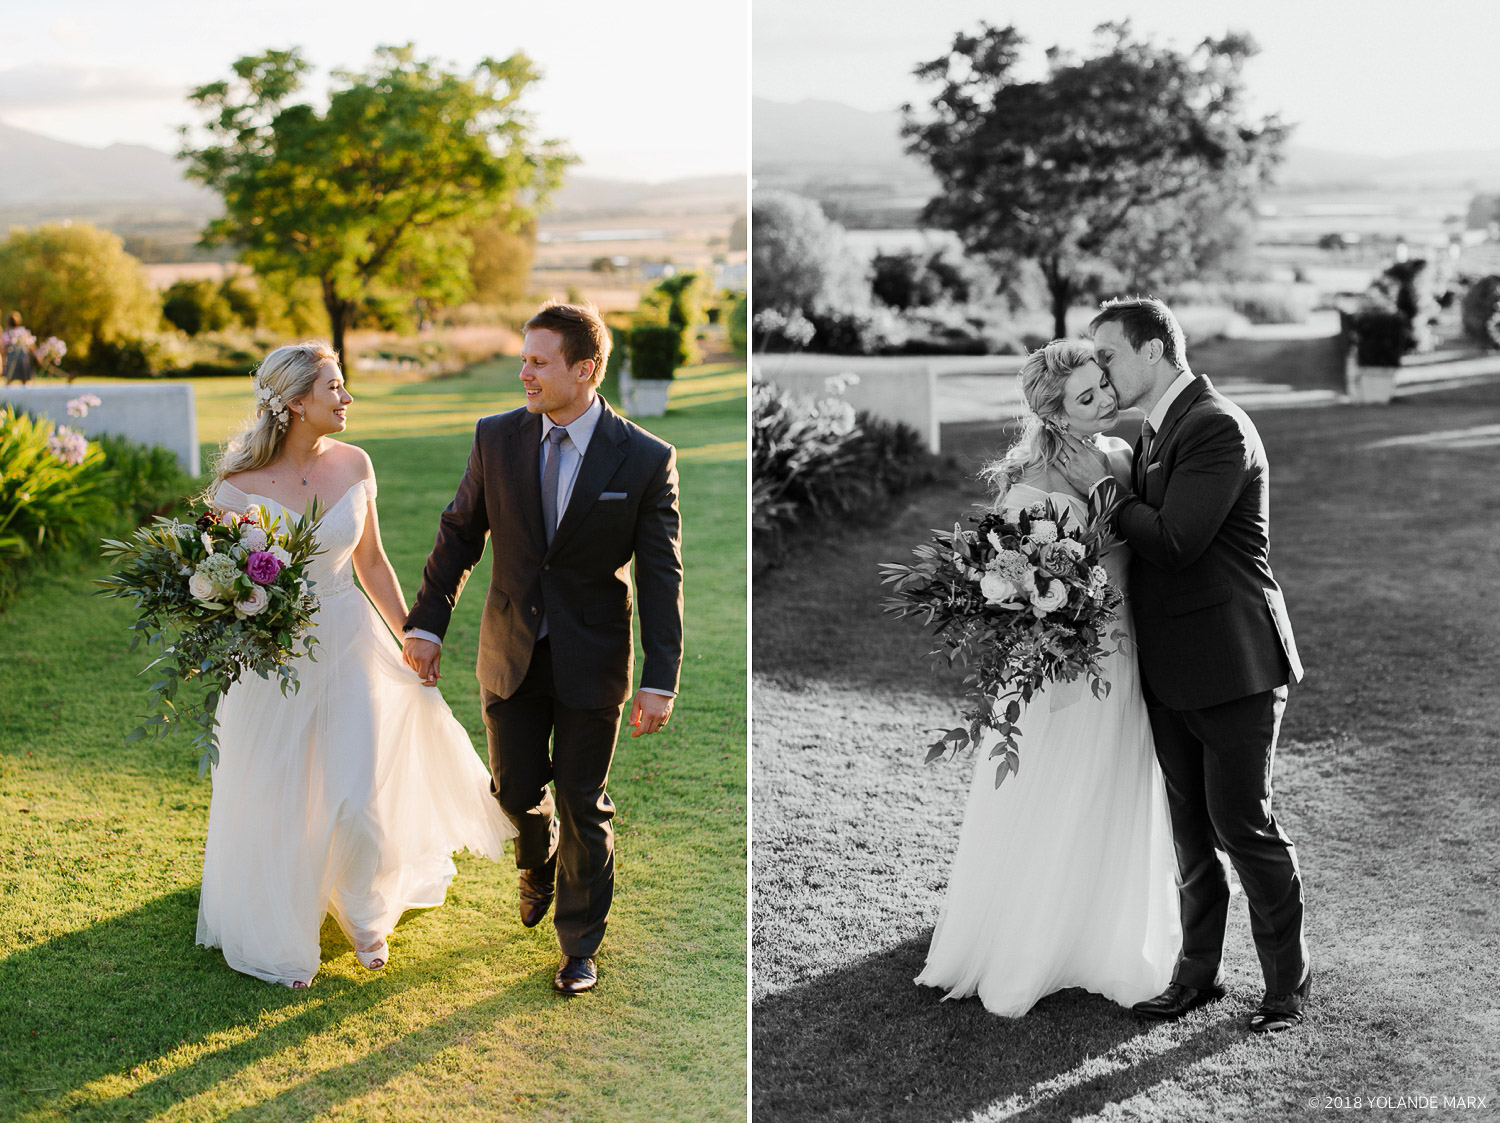 belair-wedding-yolande-marx-cape-town-photographer-paarl-103